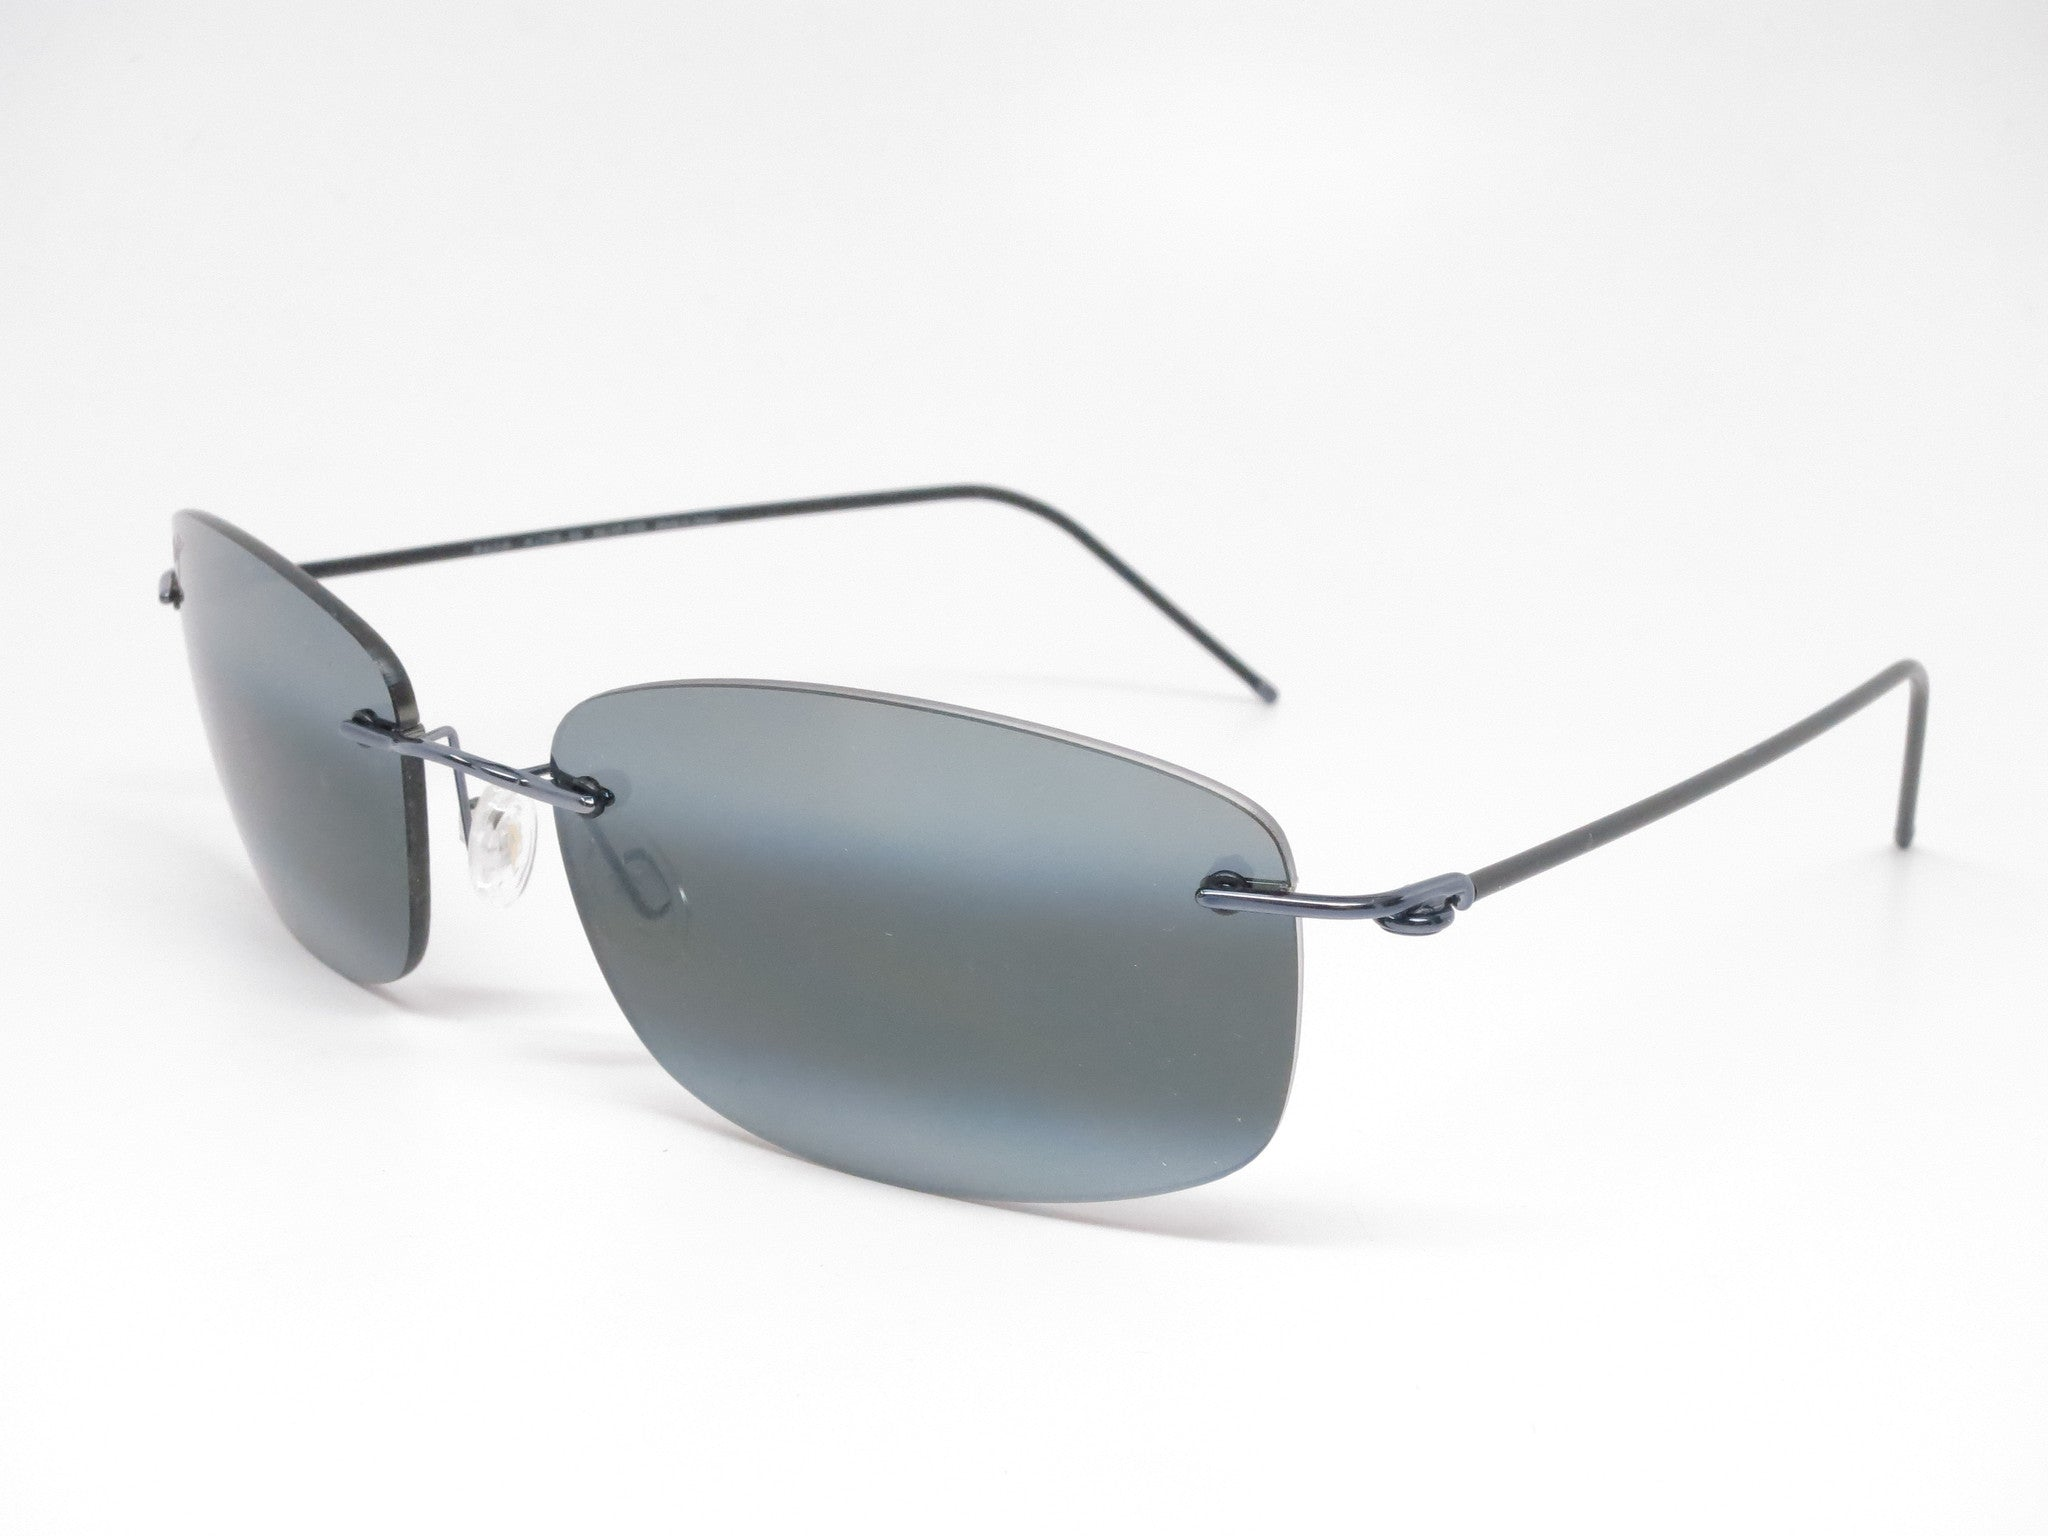 97735b6e7c Maui Jim Myna MJ 718-06 Gunmetal Blue Black Sleeve Polarized Sunglasses -  Eye ...